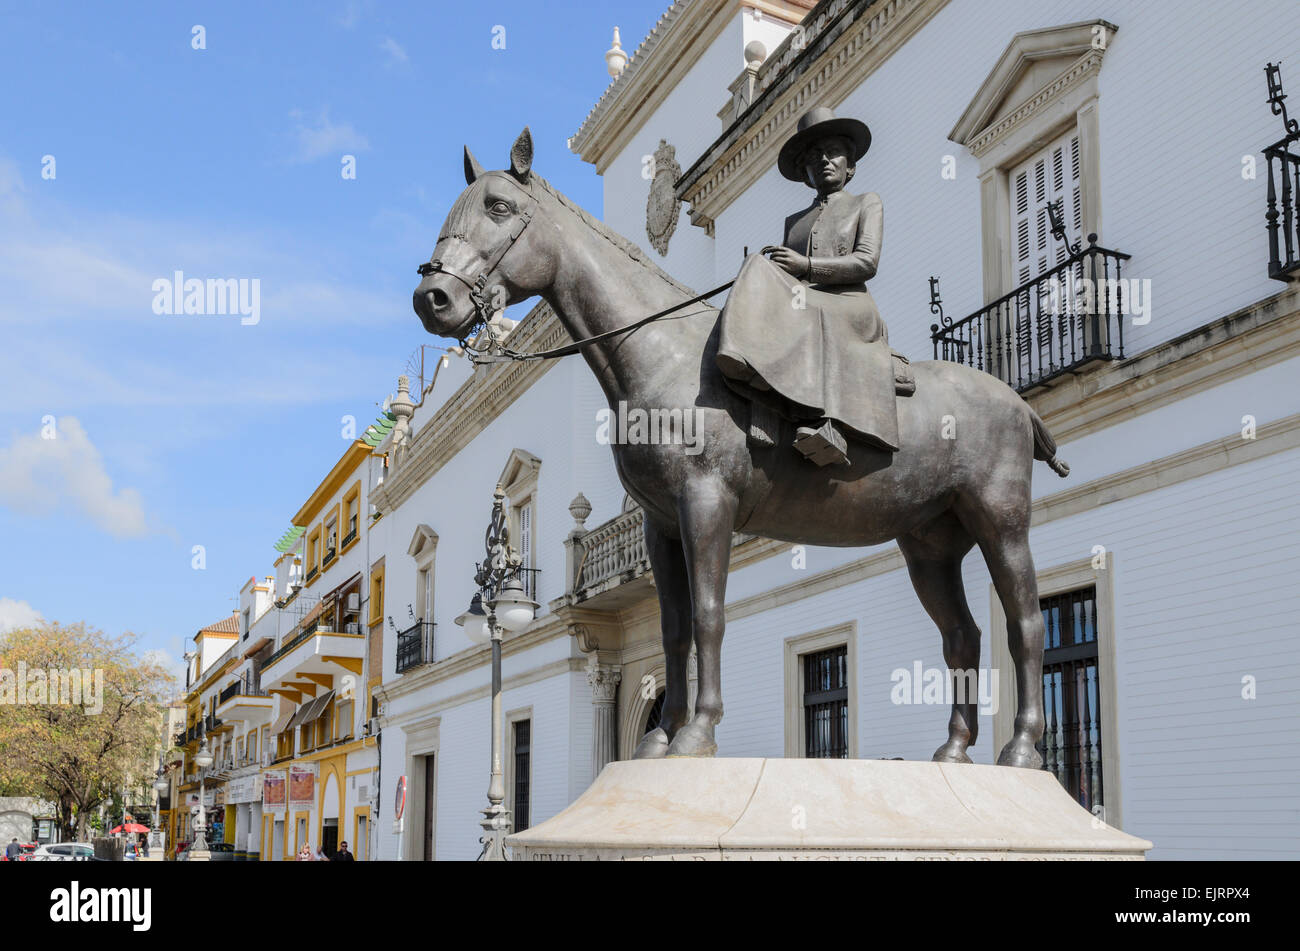 The statue of the Countess of Barcelona on horseback (Condesa de Barcelona) outside the Bullring in Seville, Spain. - Stock Image